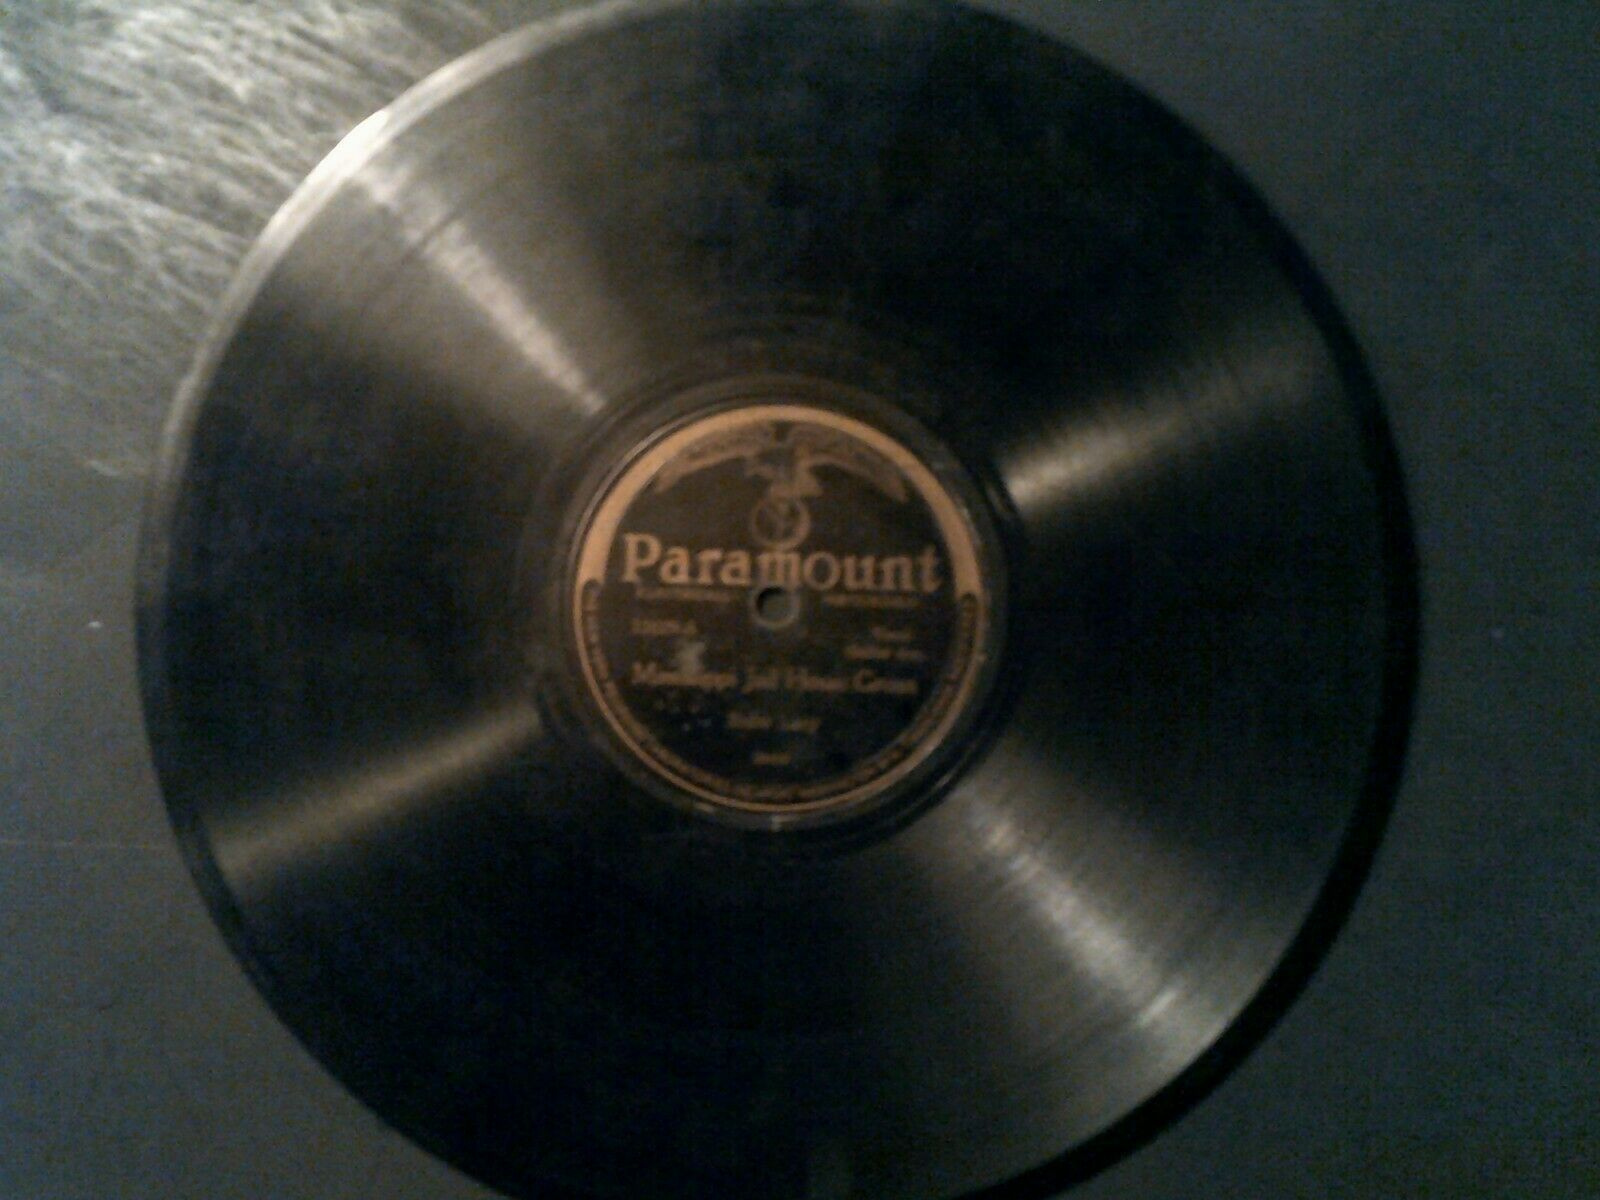 MISSISSIPPI JAIL HOUSE GROAN Rube Lacy 78 rpm record Paramount 20419